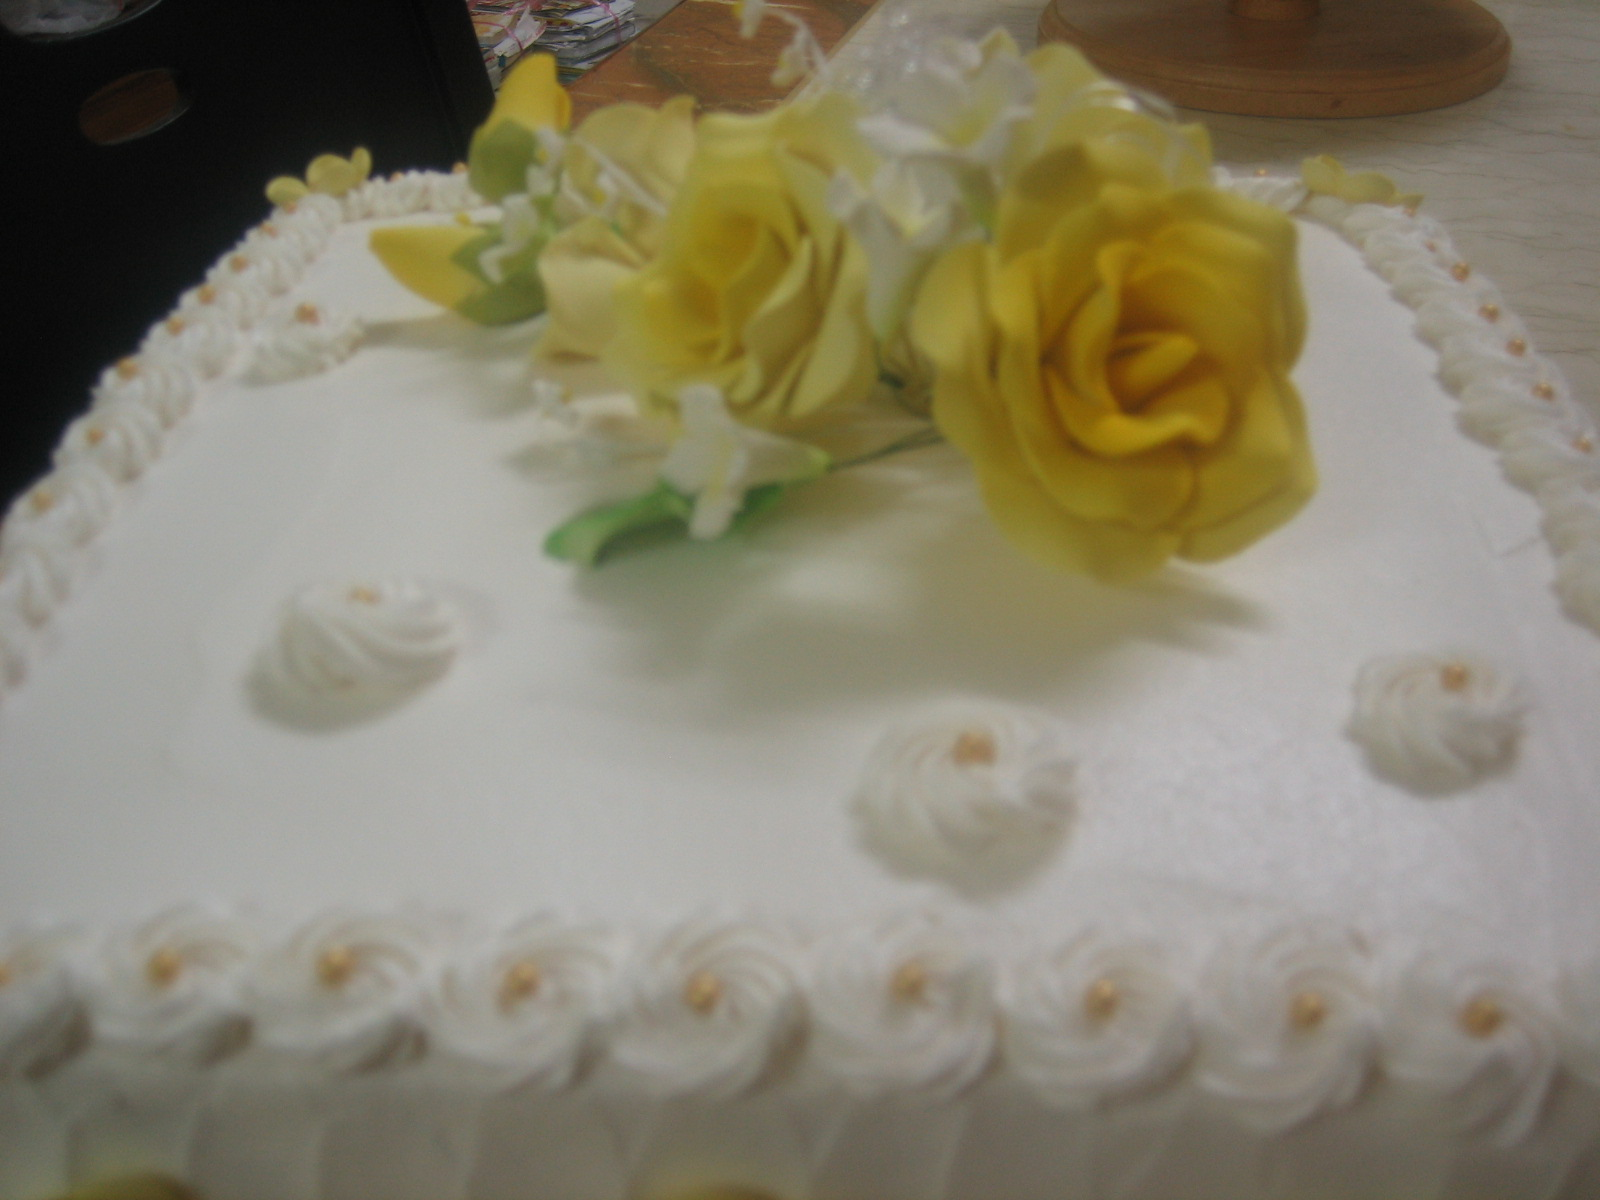 Homemade sweet treats Wedding cake delivered to Tg